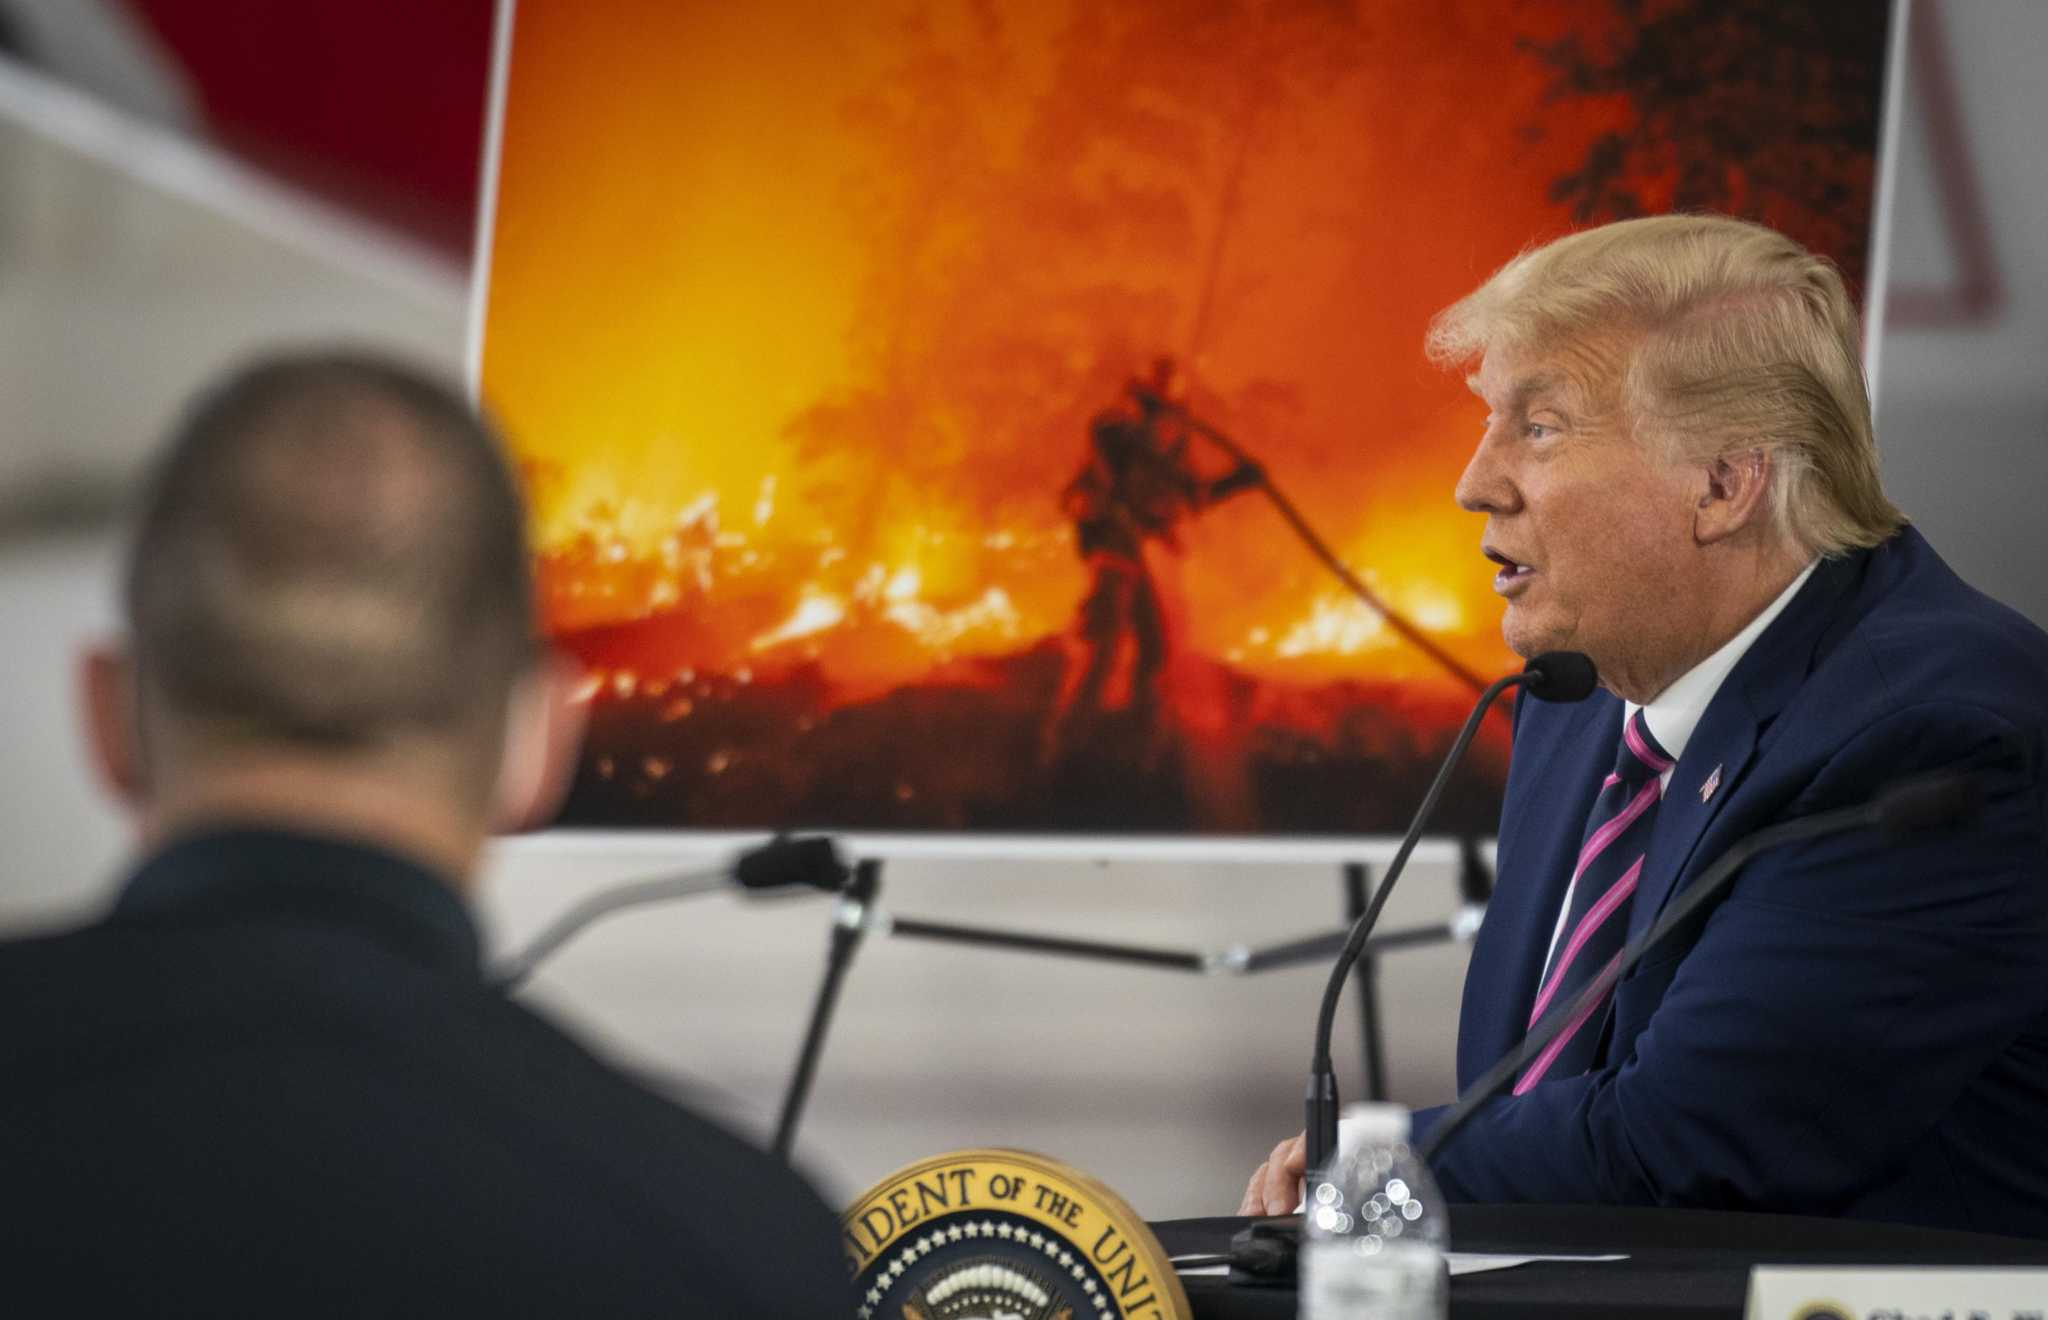 Tomlinson: Only one presidential candidate is serious about climate change - Houston Chronicle